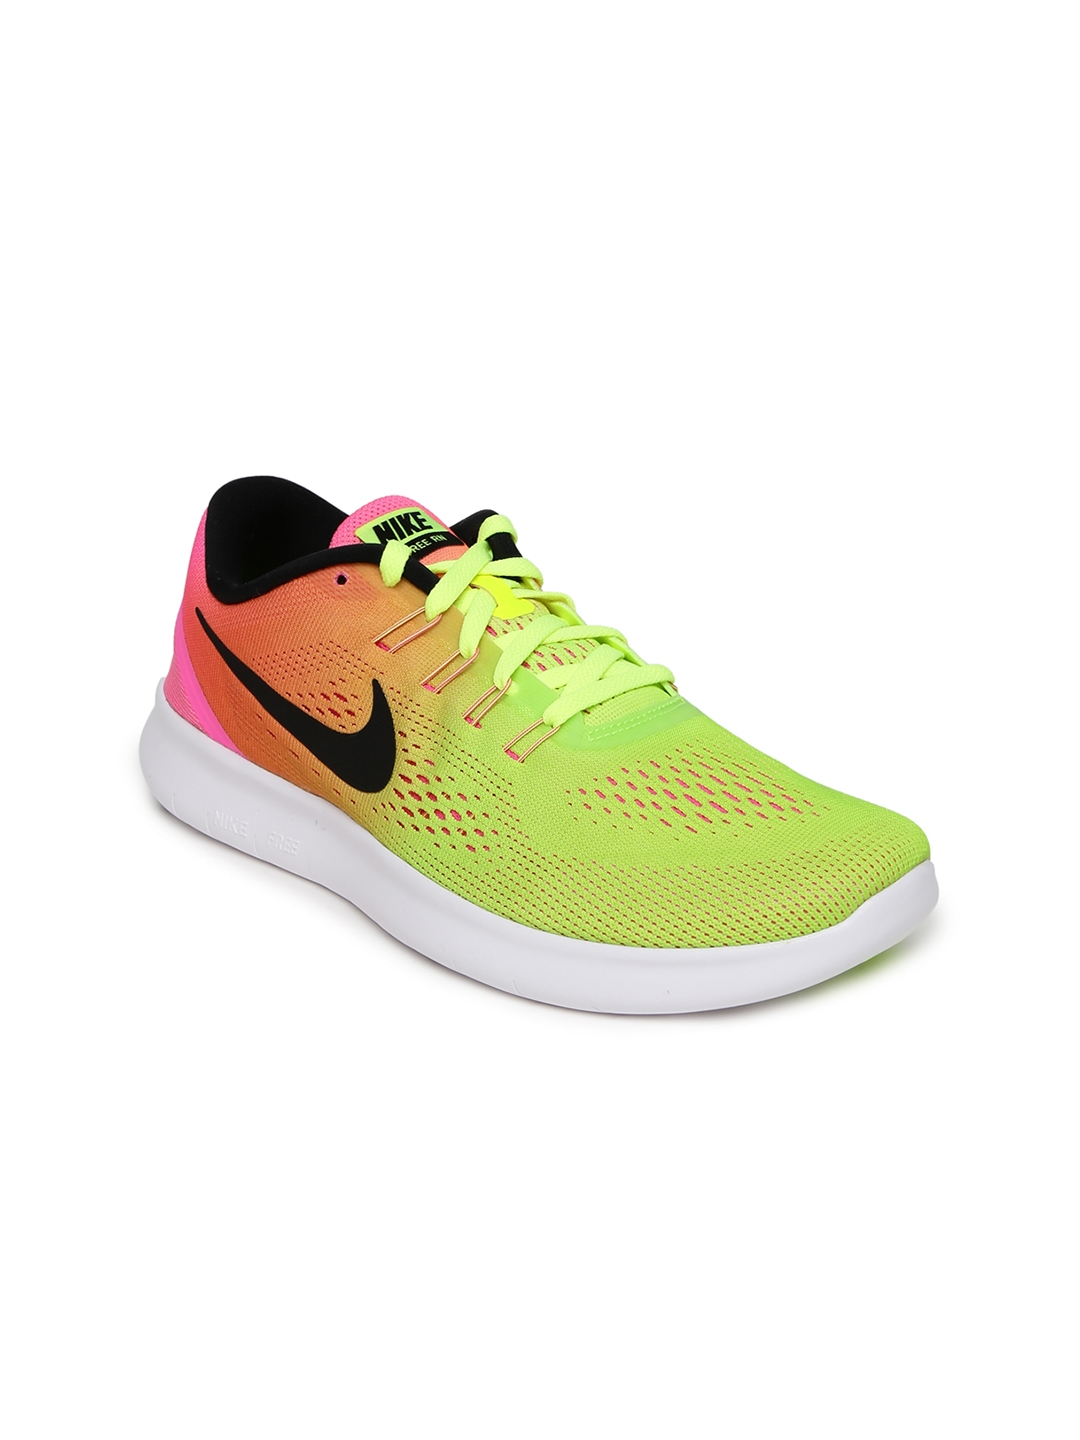 Buy Nike Women Fluorescent Green   Pink Free RN OC Running Shoes - Sports  Shoes for Women 1421031  9154d29b7edb